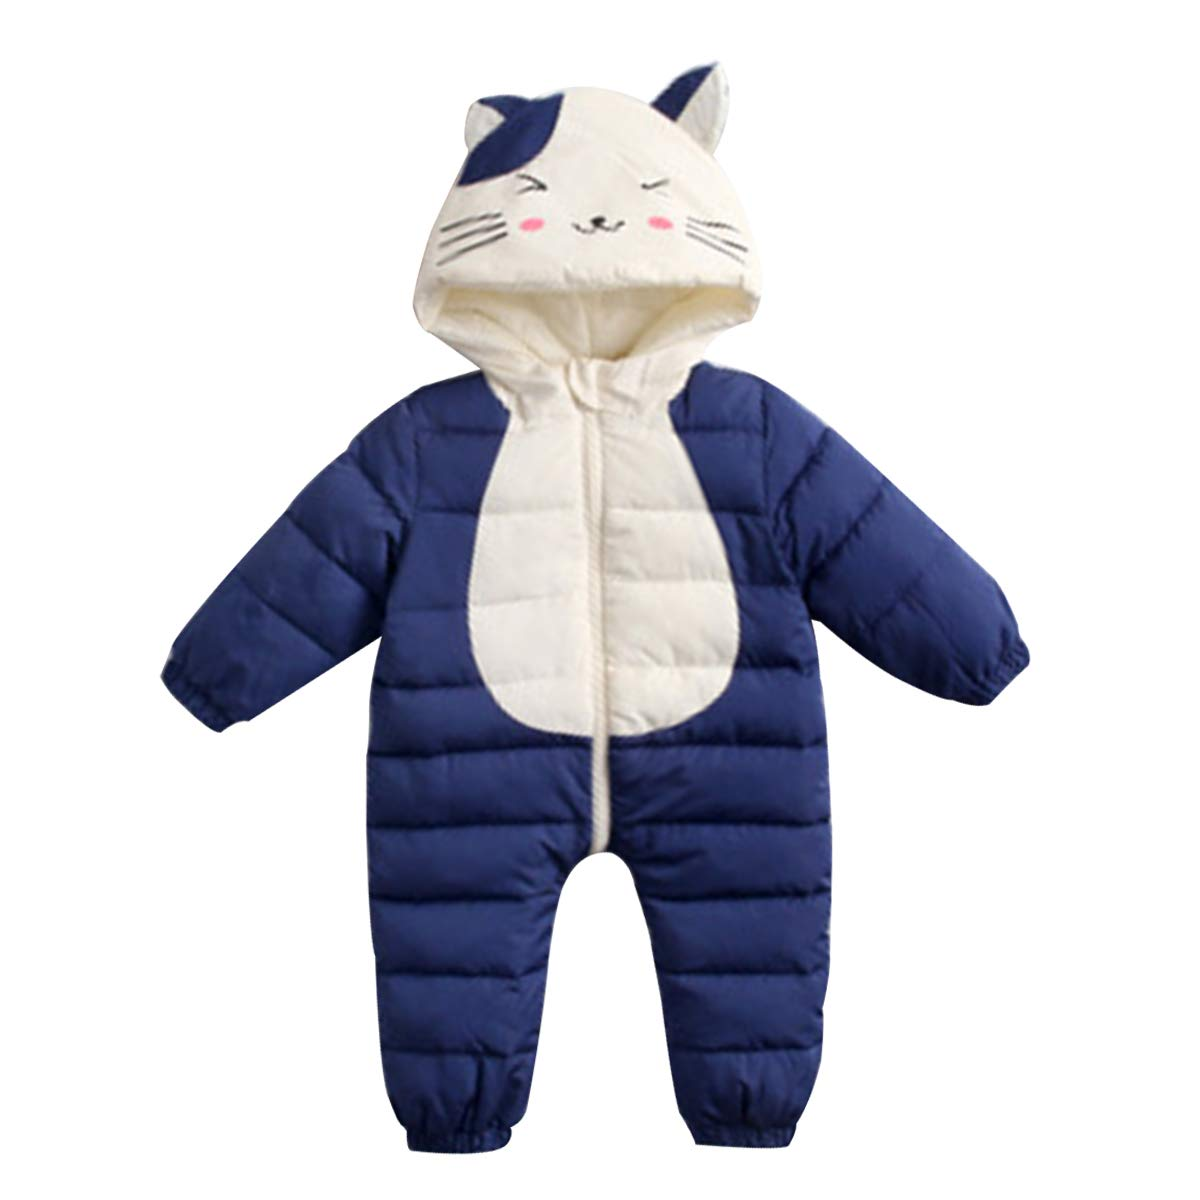 Famuka Baby Boys Girls Winter Snowsuit Cartoon Hooded Warm Outerwear Jumpsuit